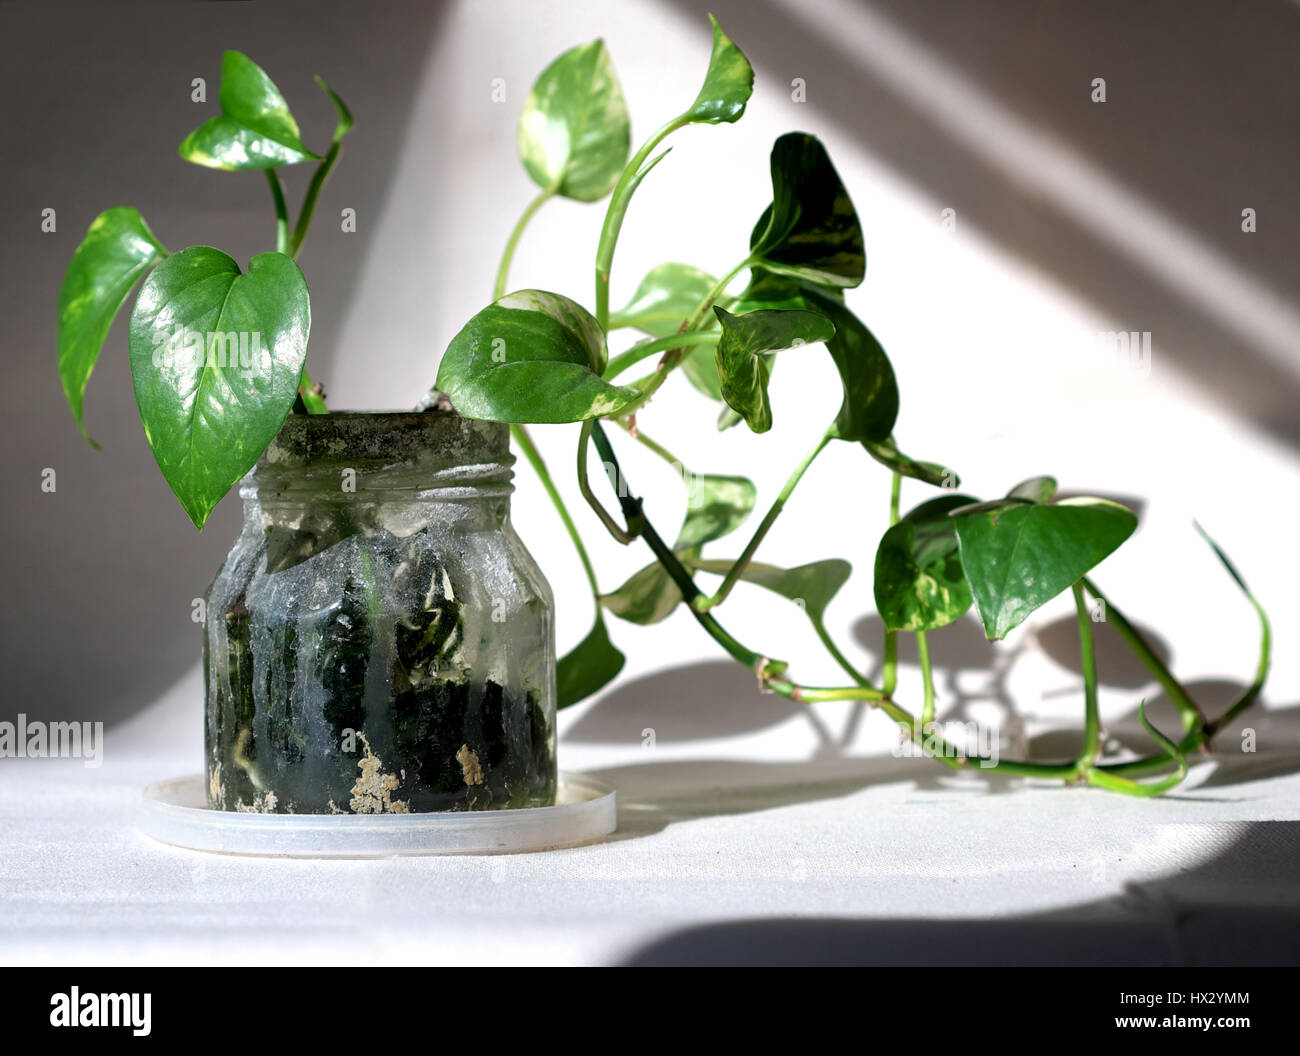 philodendron pflanzen im glas hydrokultur stockfoto bild. Black Bedroom Furniture Sets. Home Design Ideas